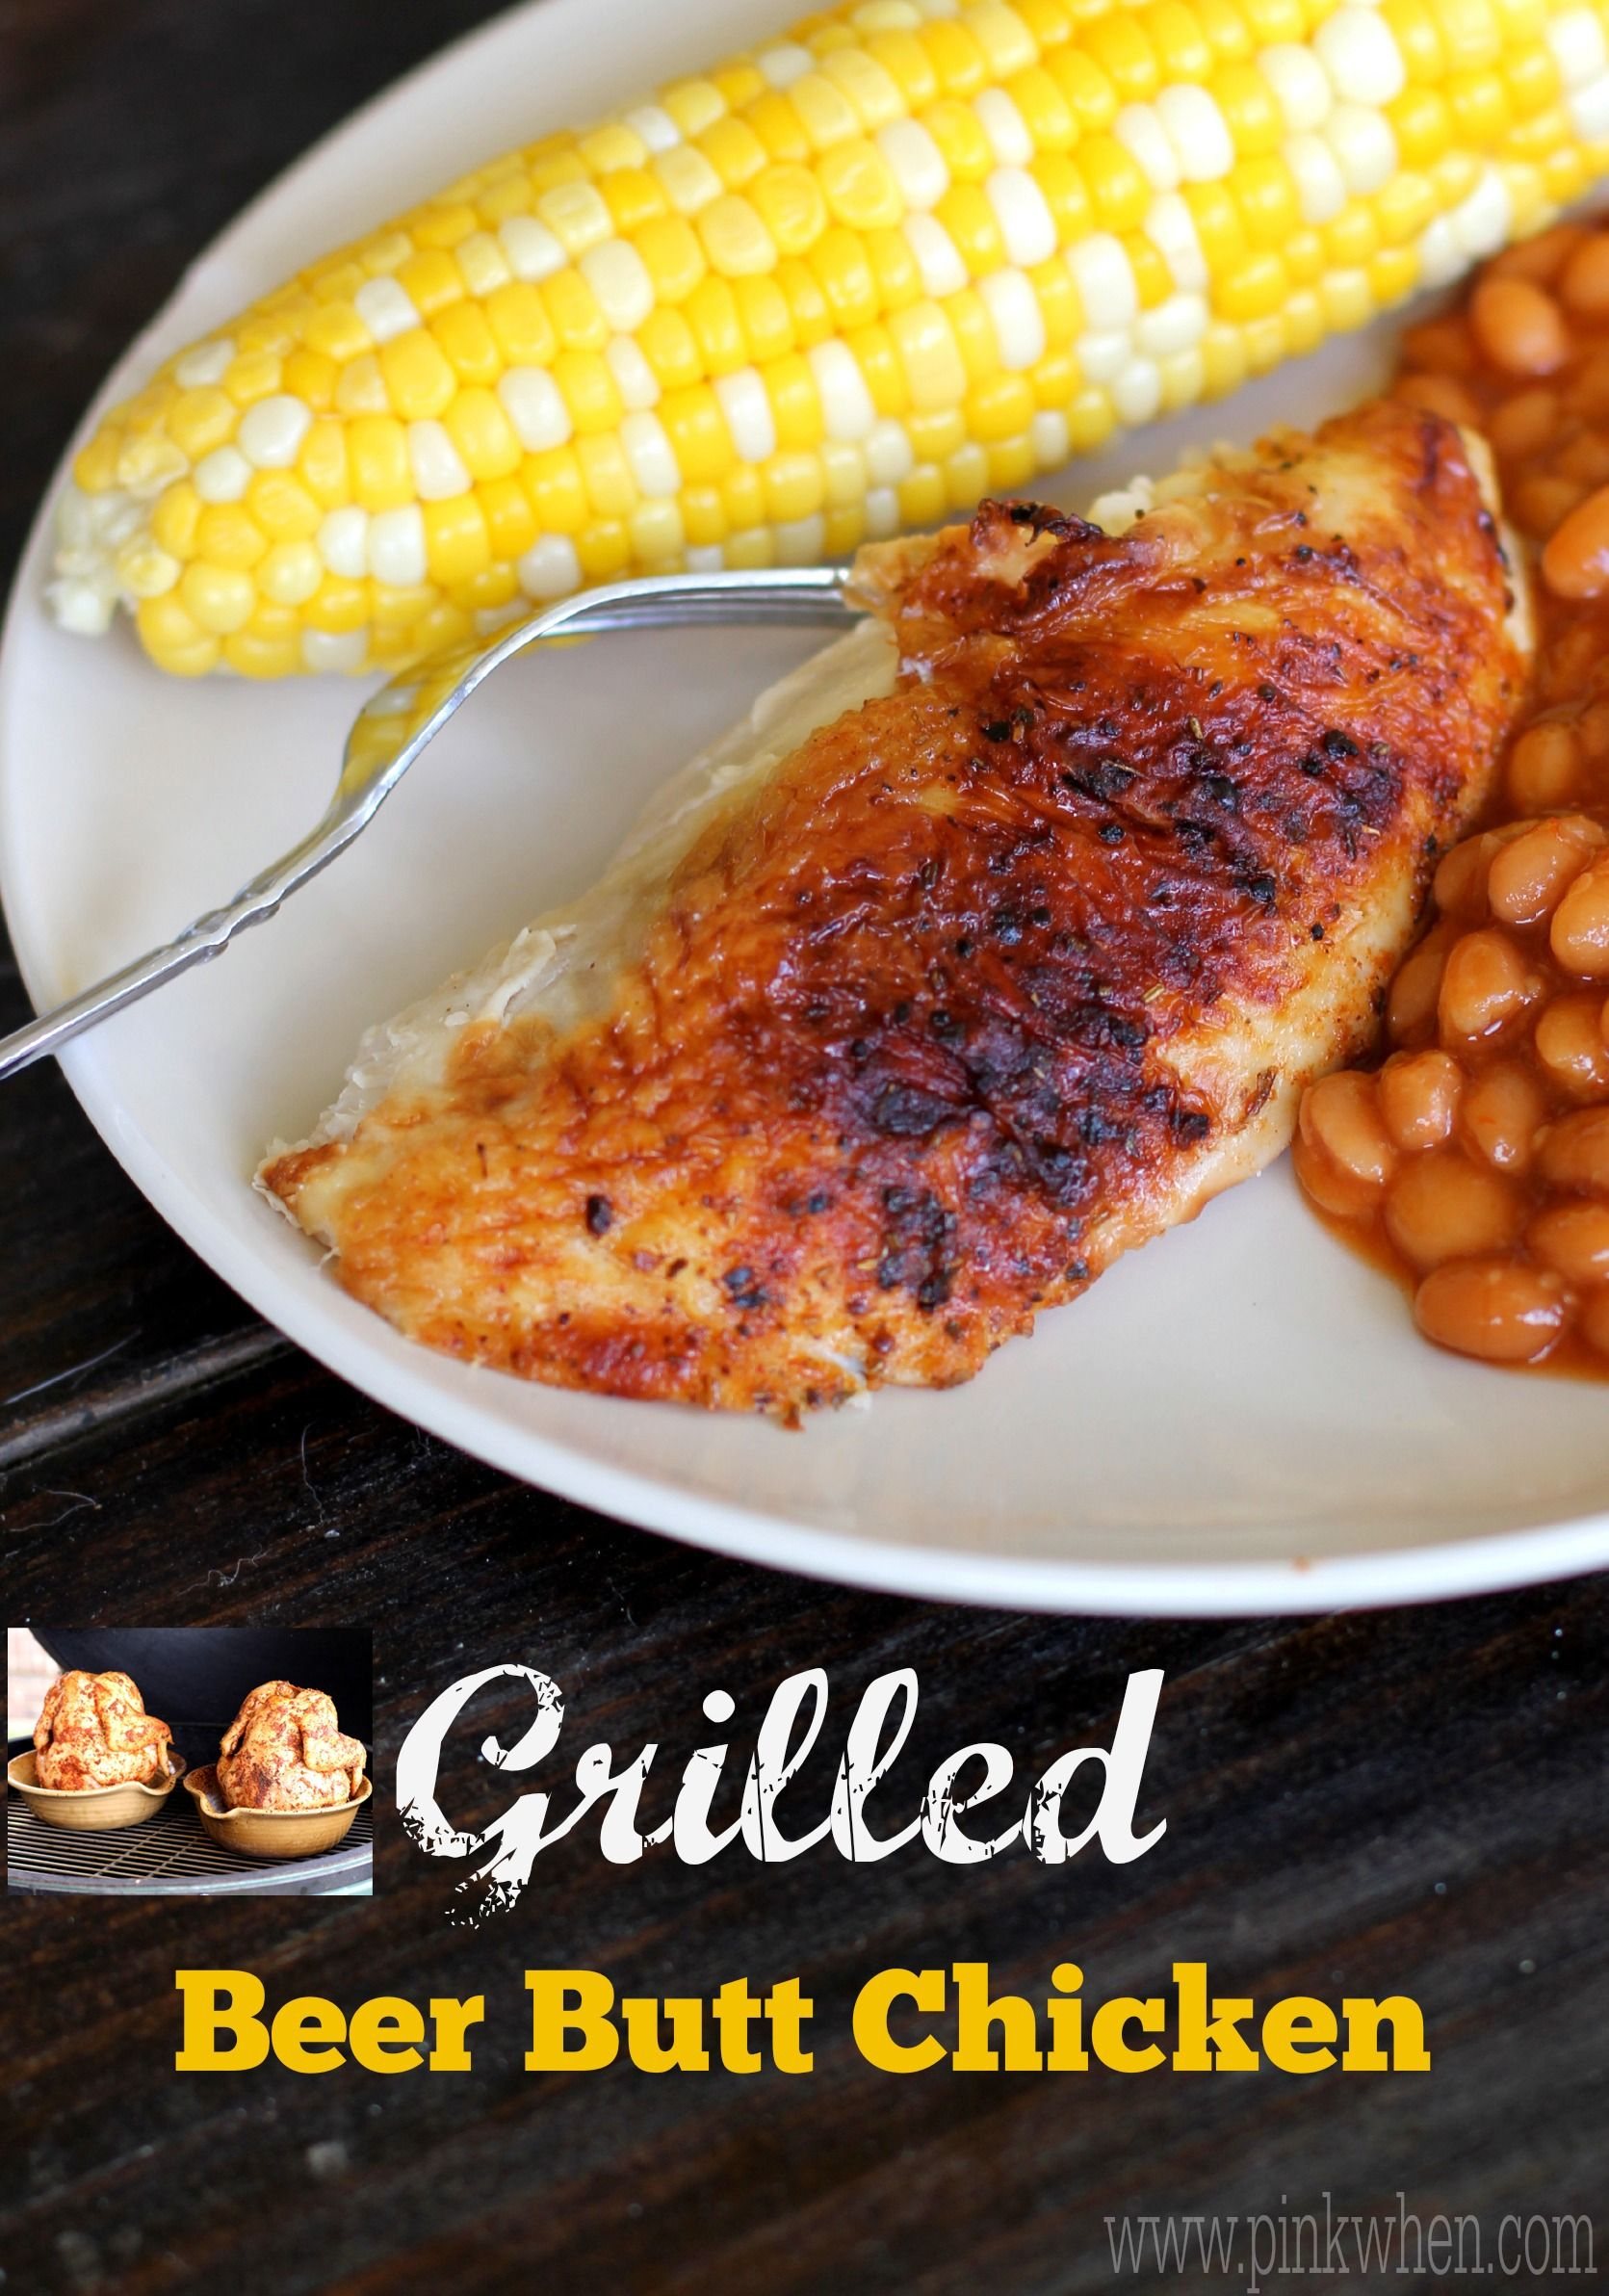 One of the most delicious and moist grilled chicken recipes you will ever taste! PIN this one for later!